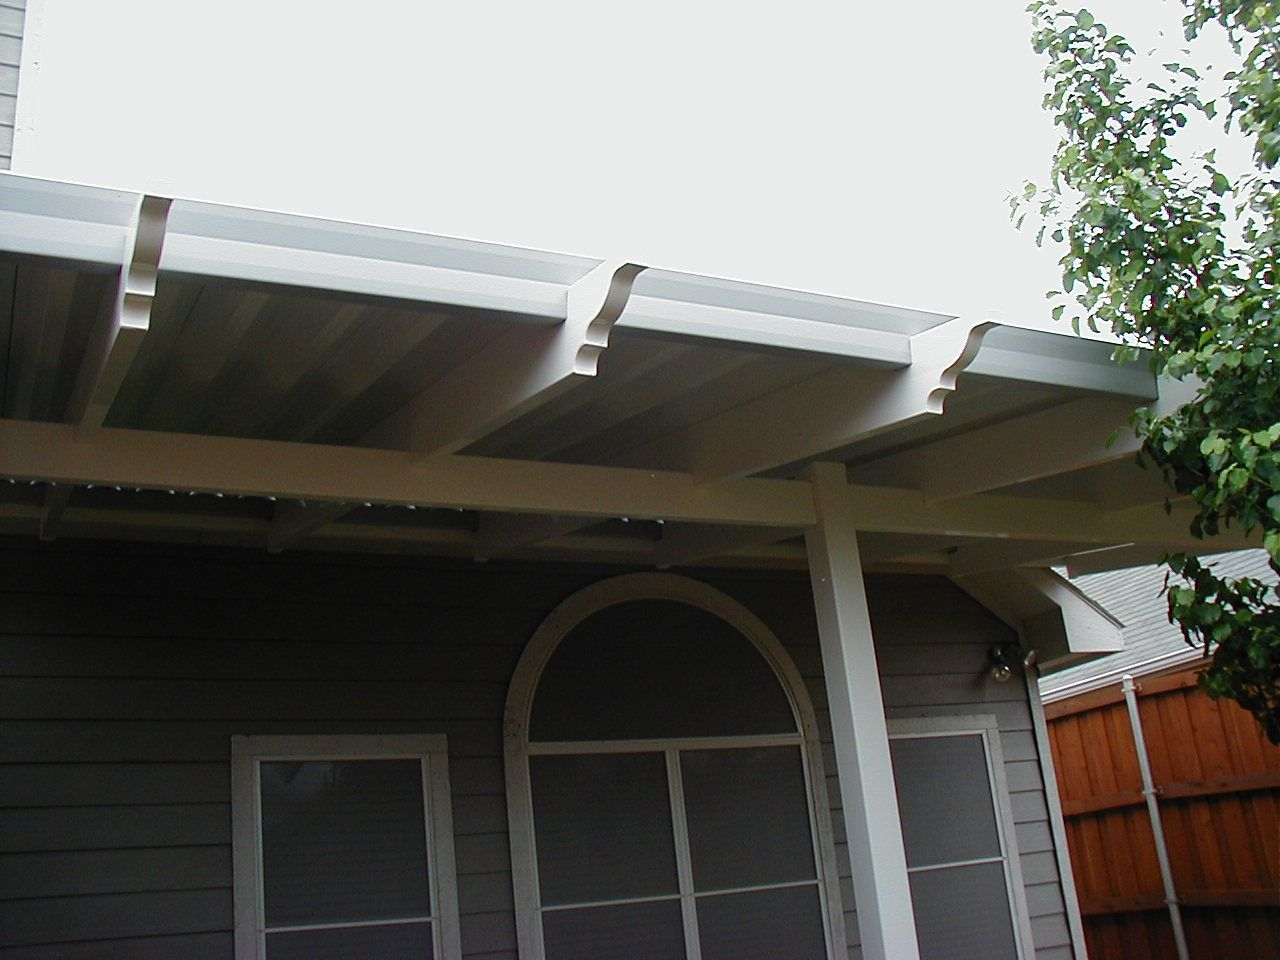 Aluminum Patio Covers Do Not Have To Look Ugly. Vinyl Trim Adds Decoration  To The Plain Patio Cover. Future Outdoors® 972 576 1600 Or 972 298 6659 ...